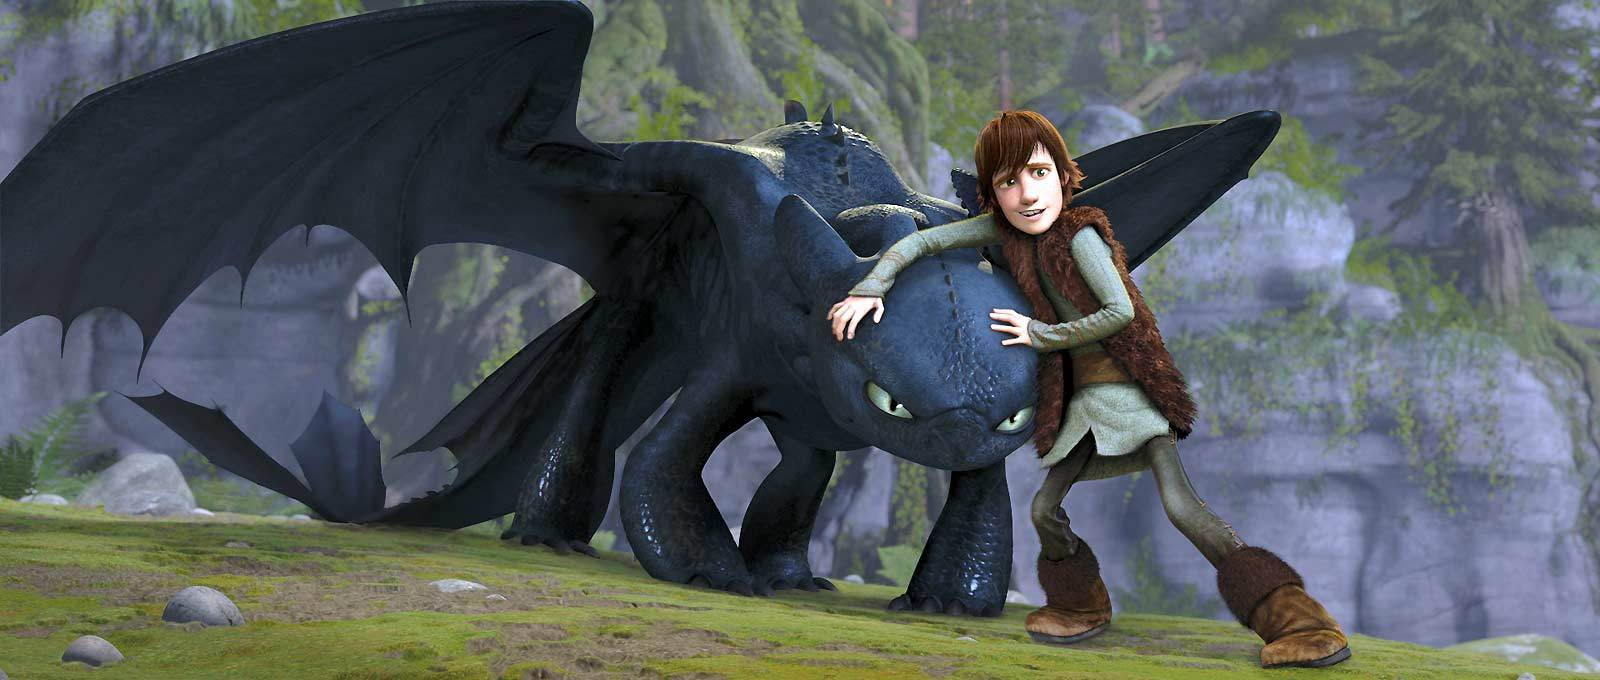 How to train your dragon x reader inserts favourites by how to train your dragon x reader inserts favourites by katiespeakes on deviantart ccuart Images